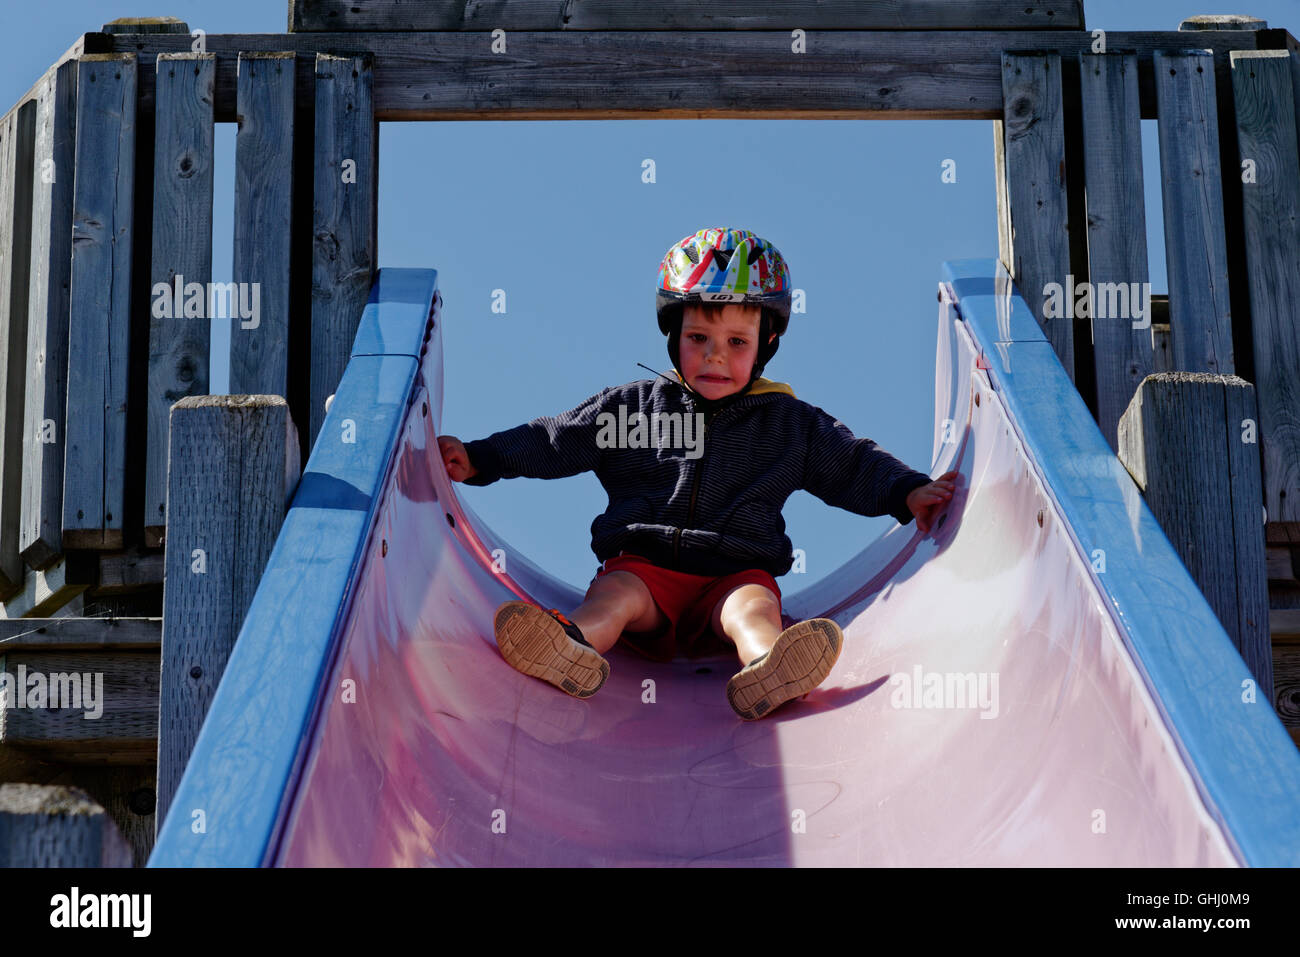 A scared boy (4 yrs old) sat looking down a long slide - Stock Image